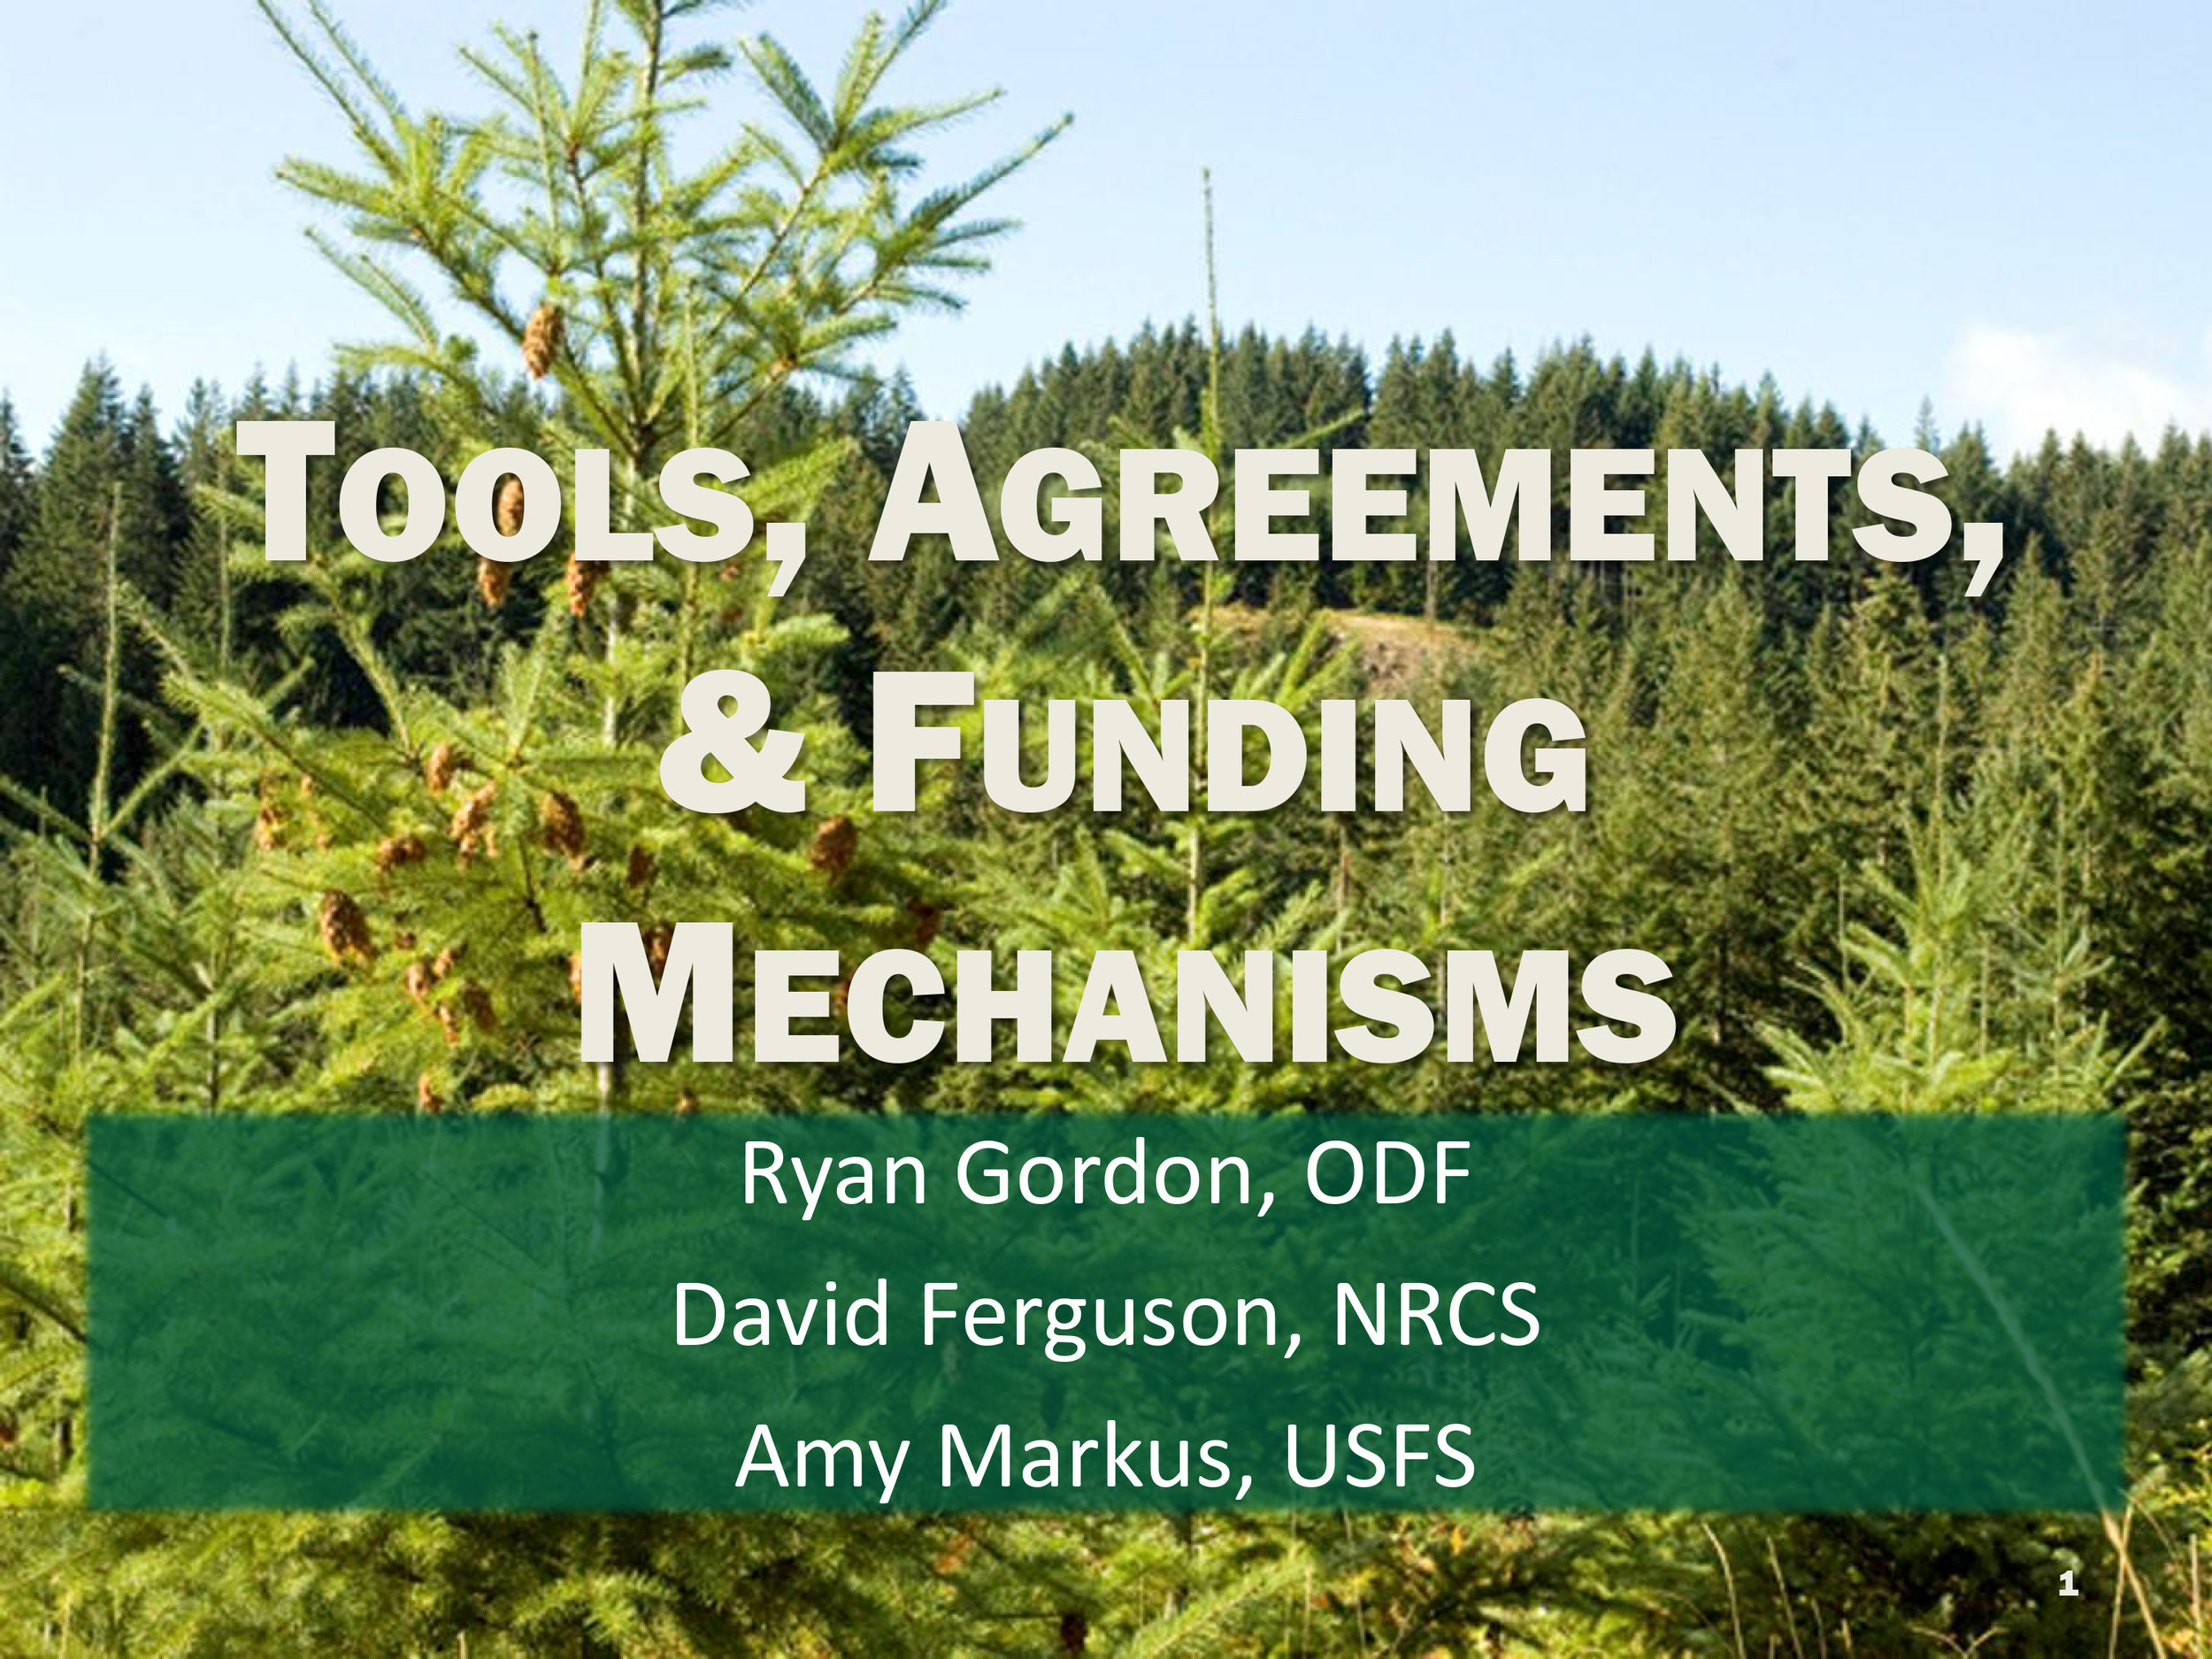 Tools Agreements and Funding Mechanisms-1.jpg